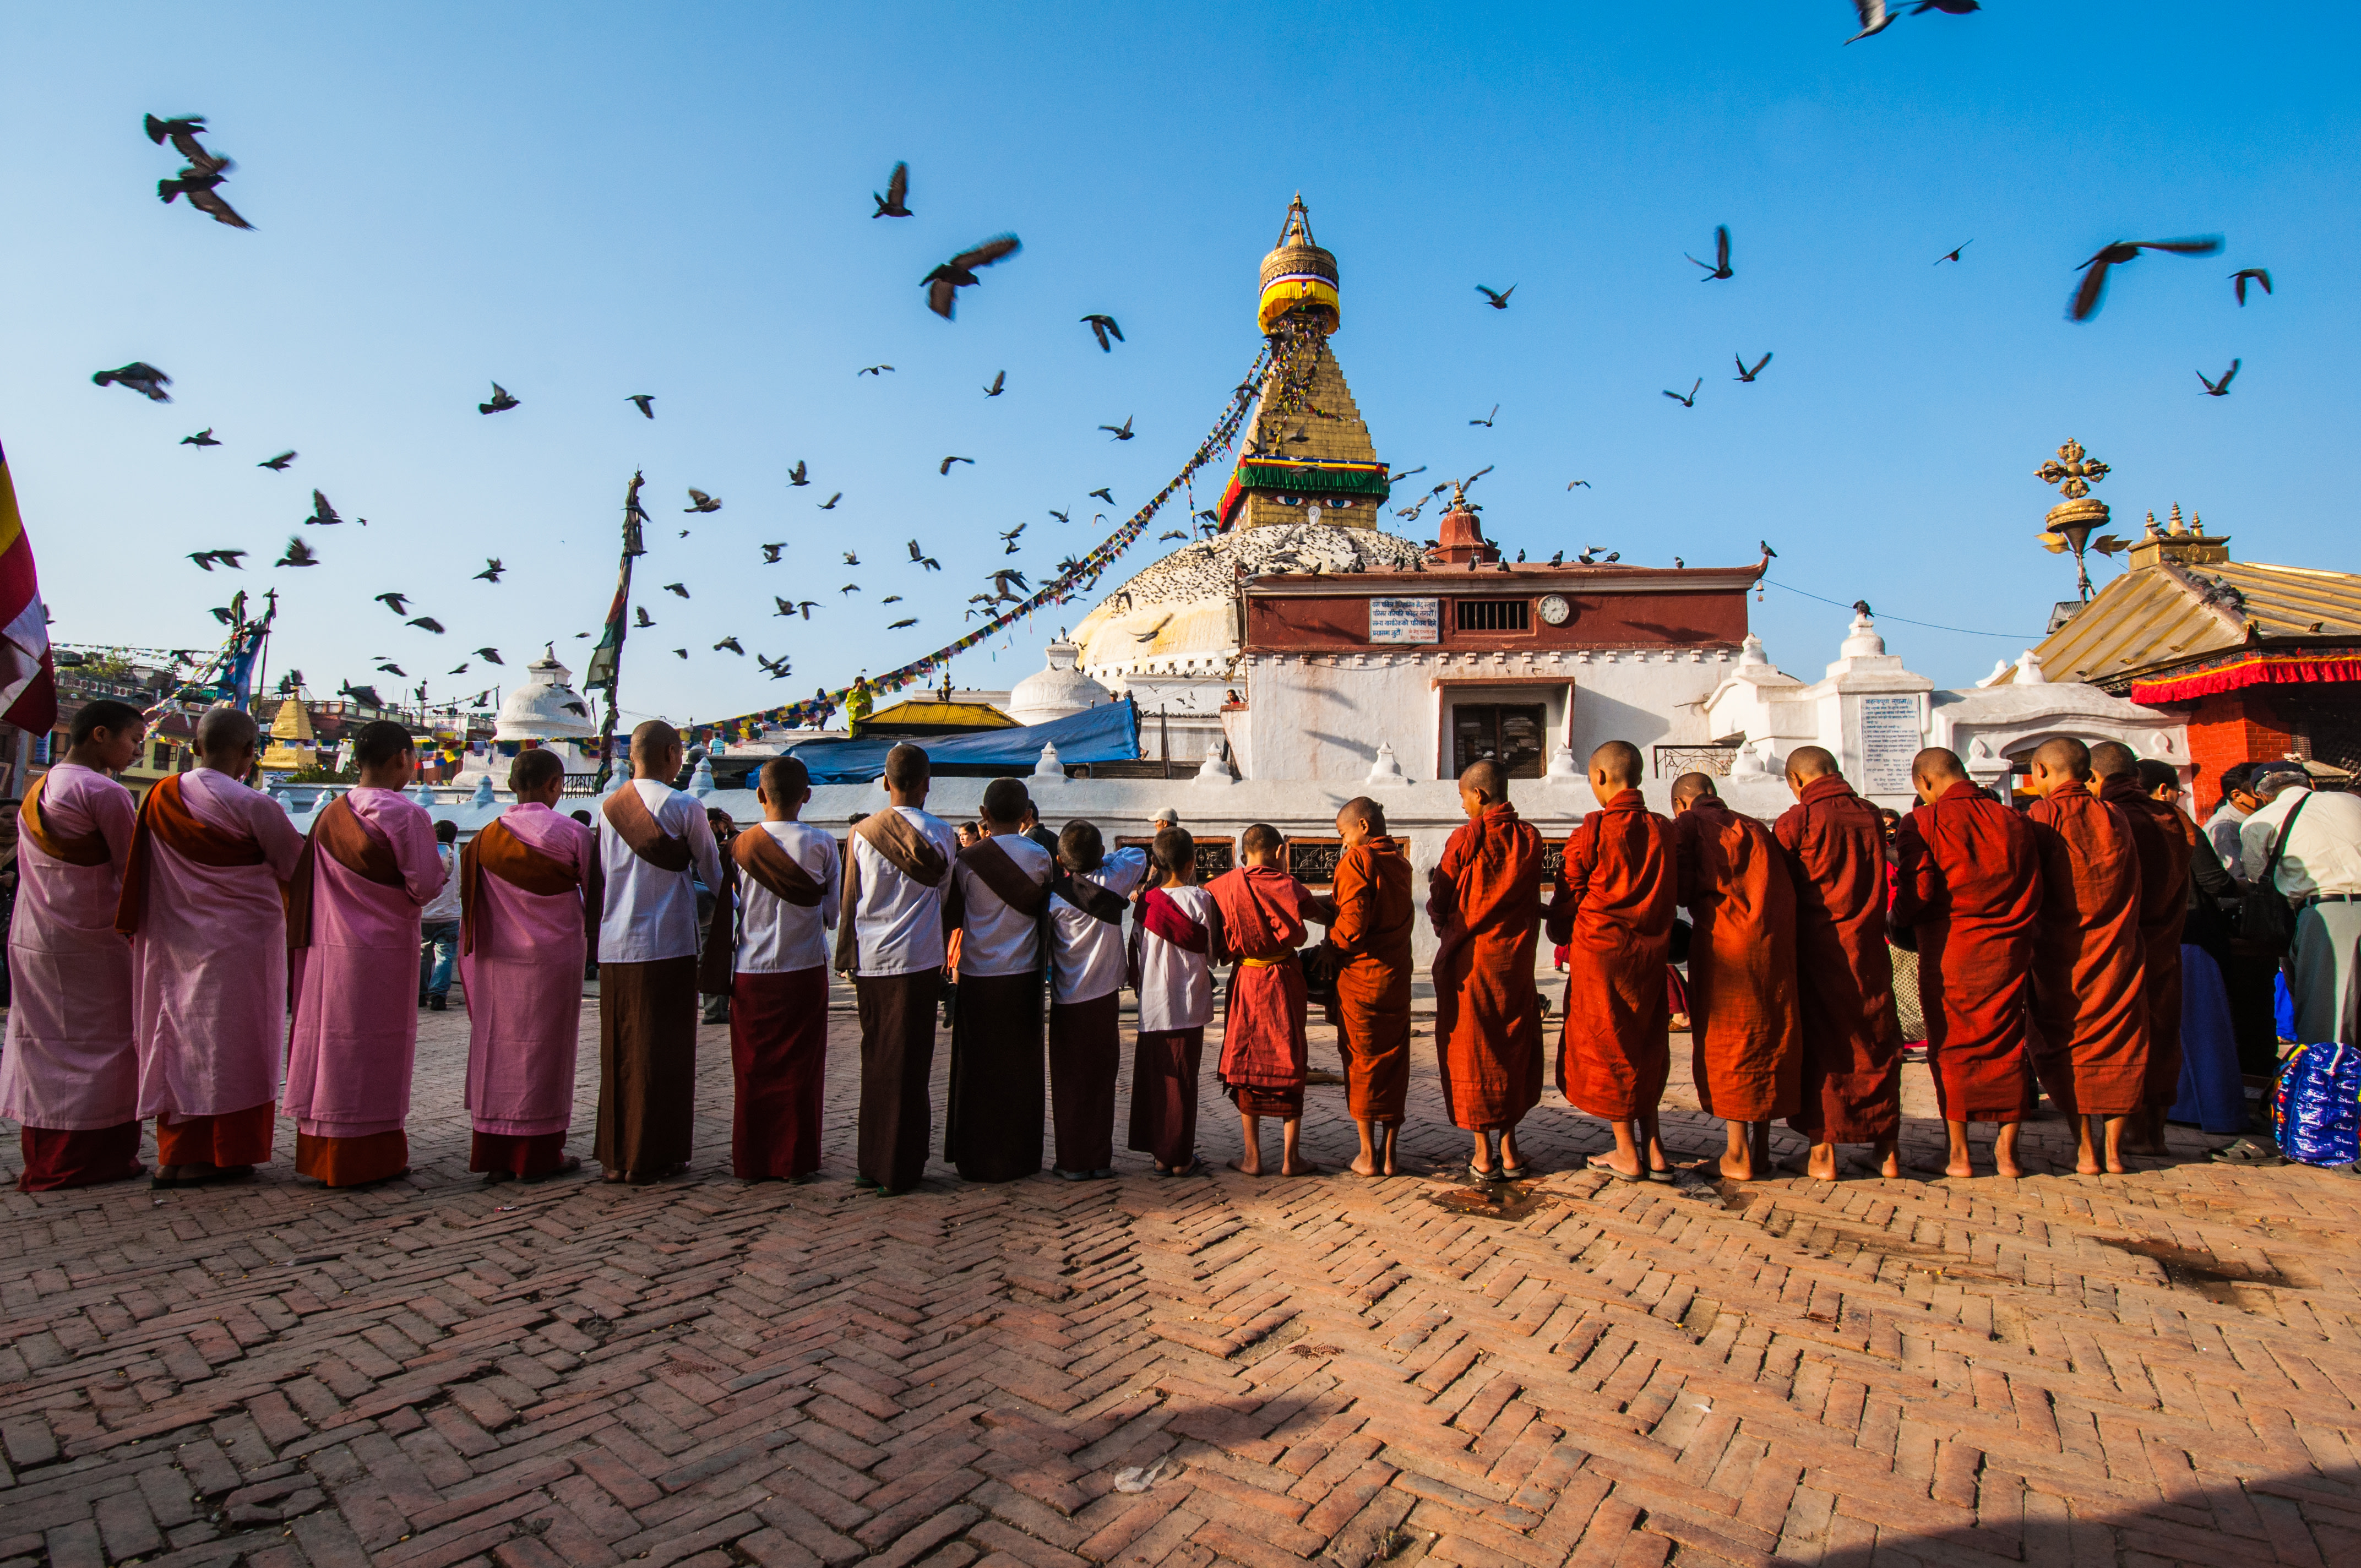 Nepal 2020 : Come explore Nepal for memorable moments & nature attractions